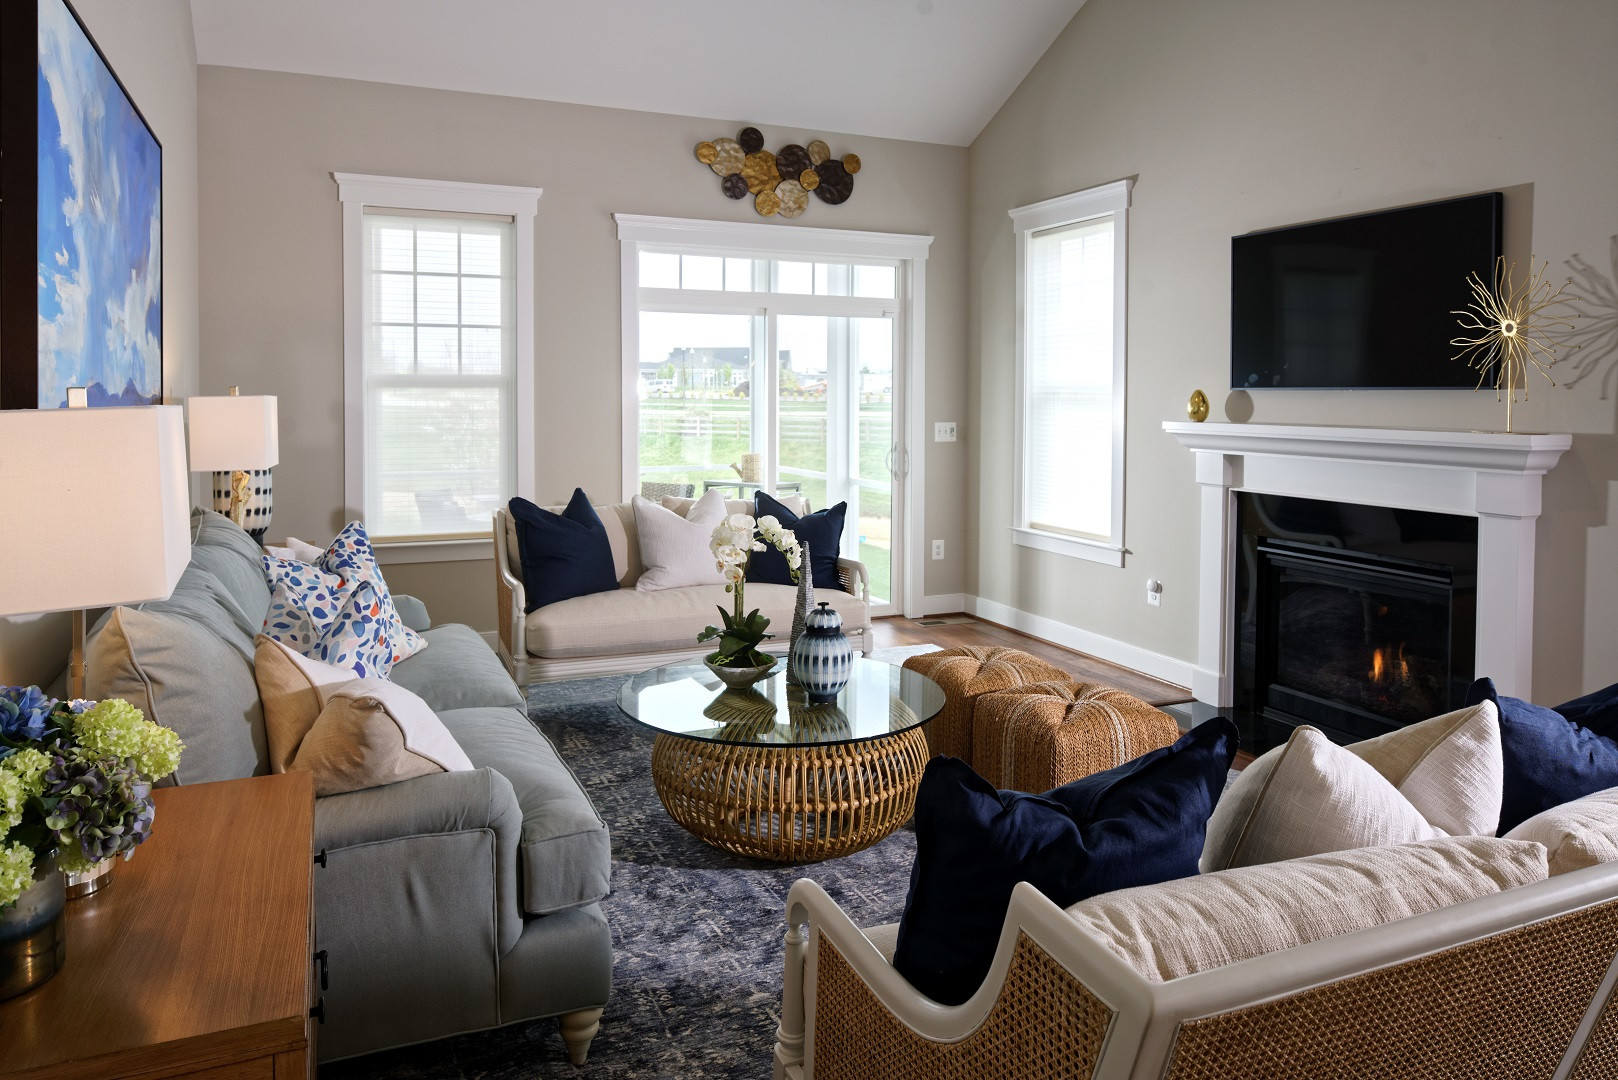 55+ Homes in Odenton MD | Brookfield Residential at Two Rivers